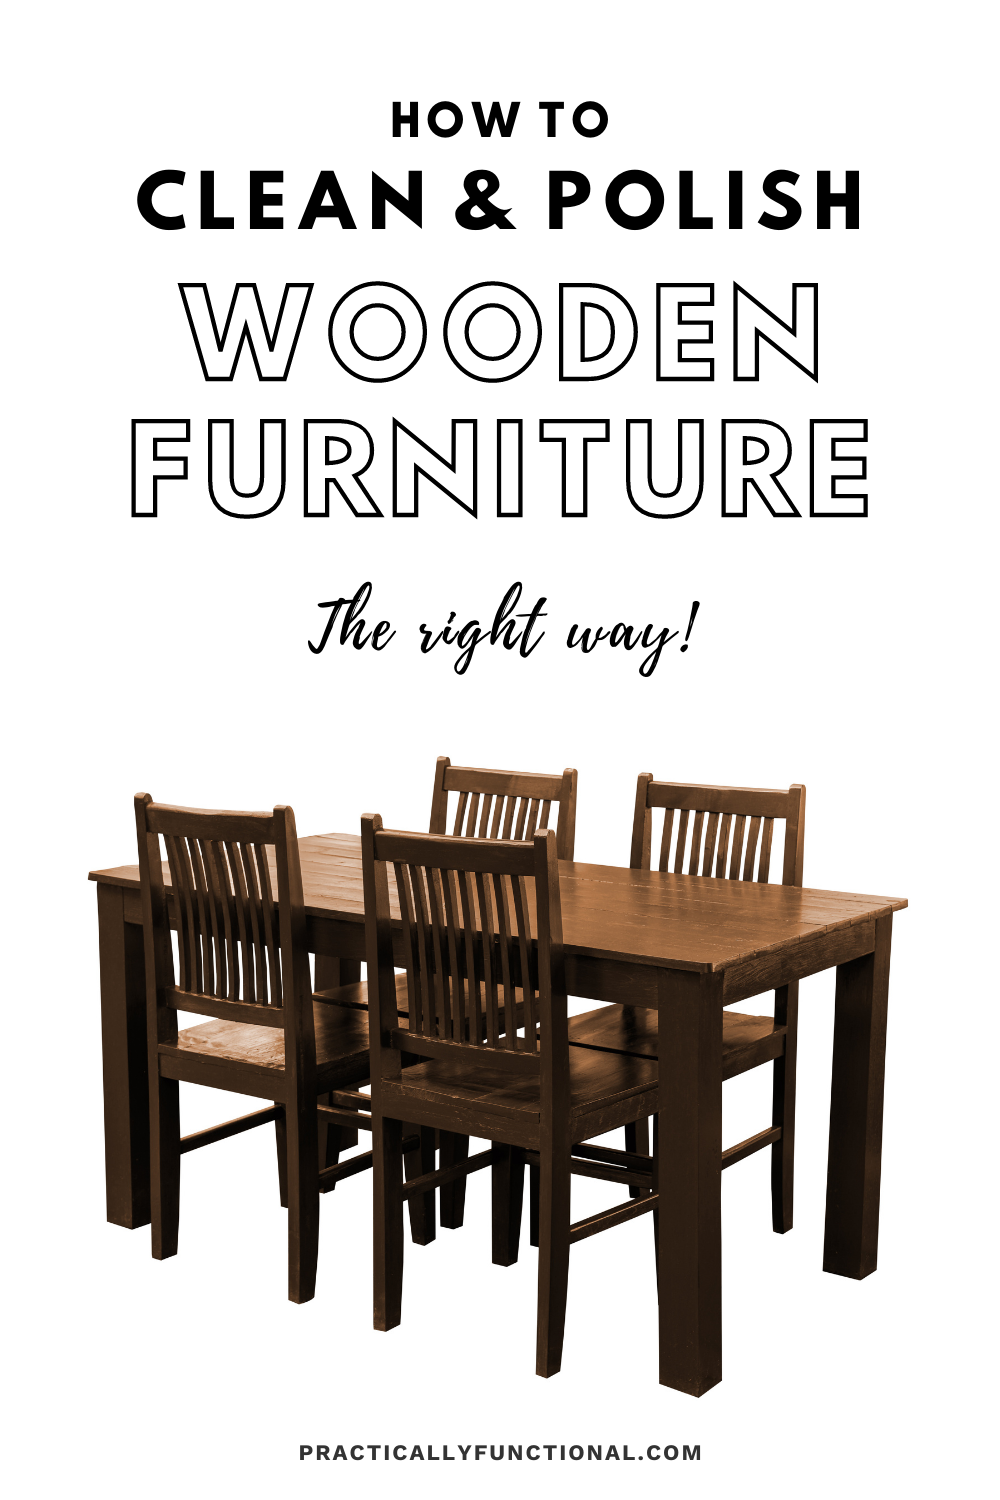 solid wood table and chairs with text